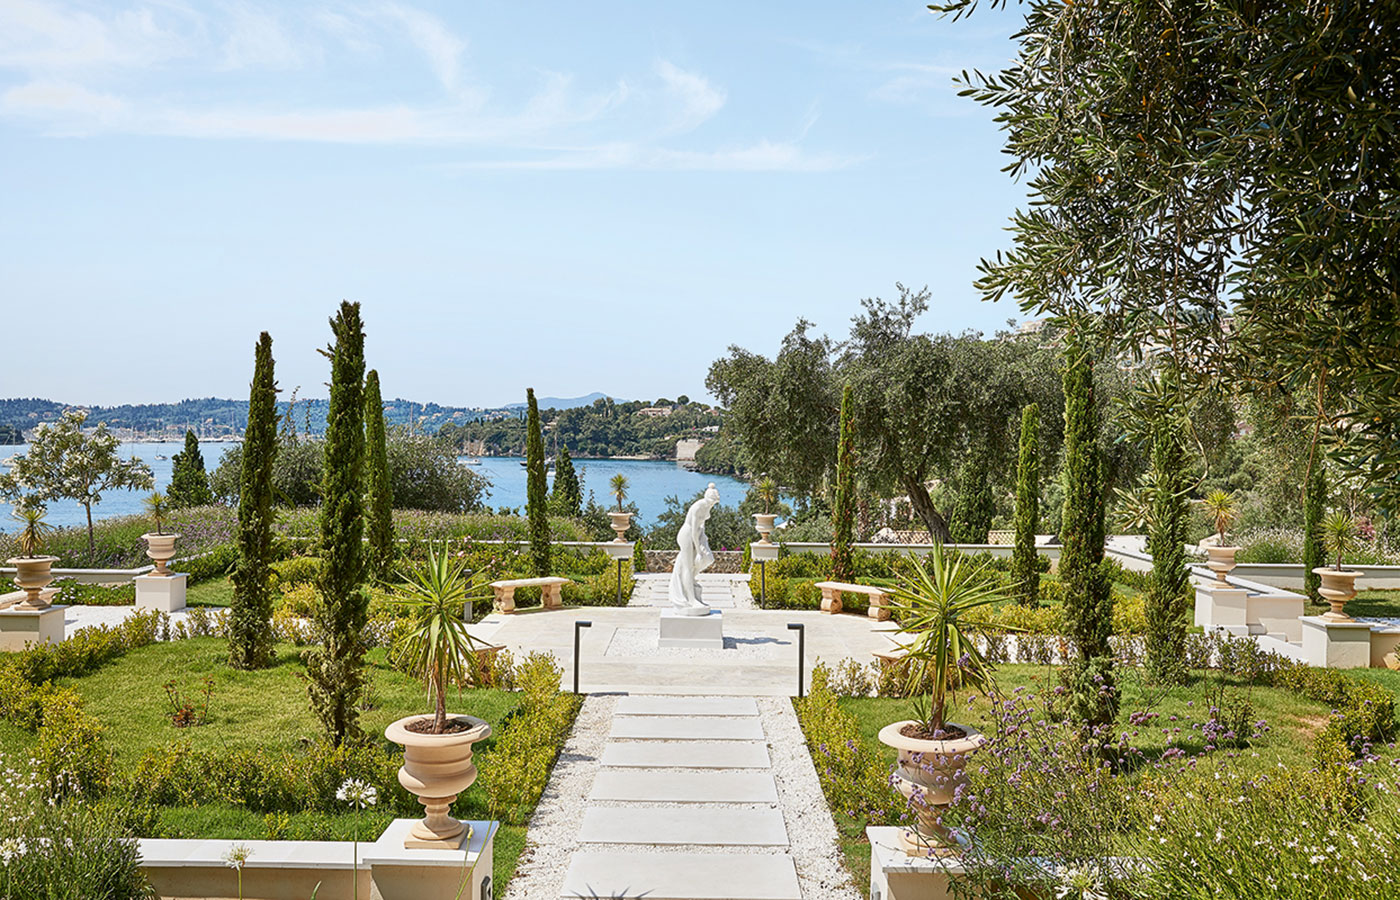 Corfu Imperial Wedding Venue